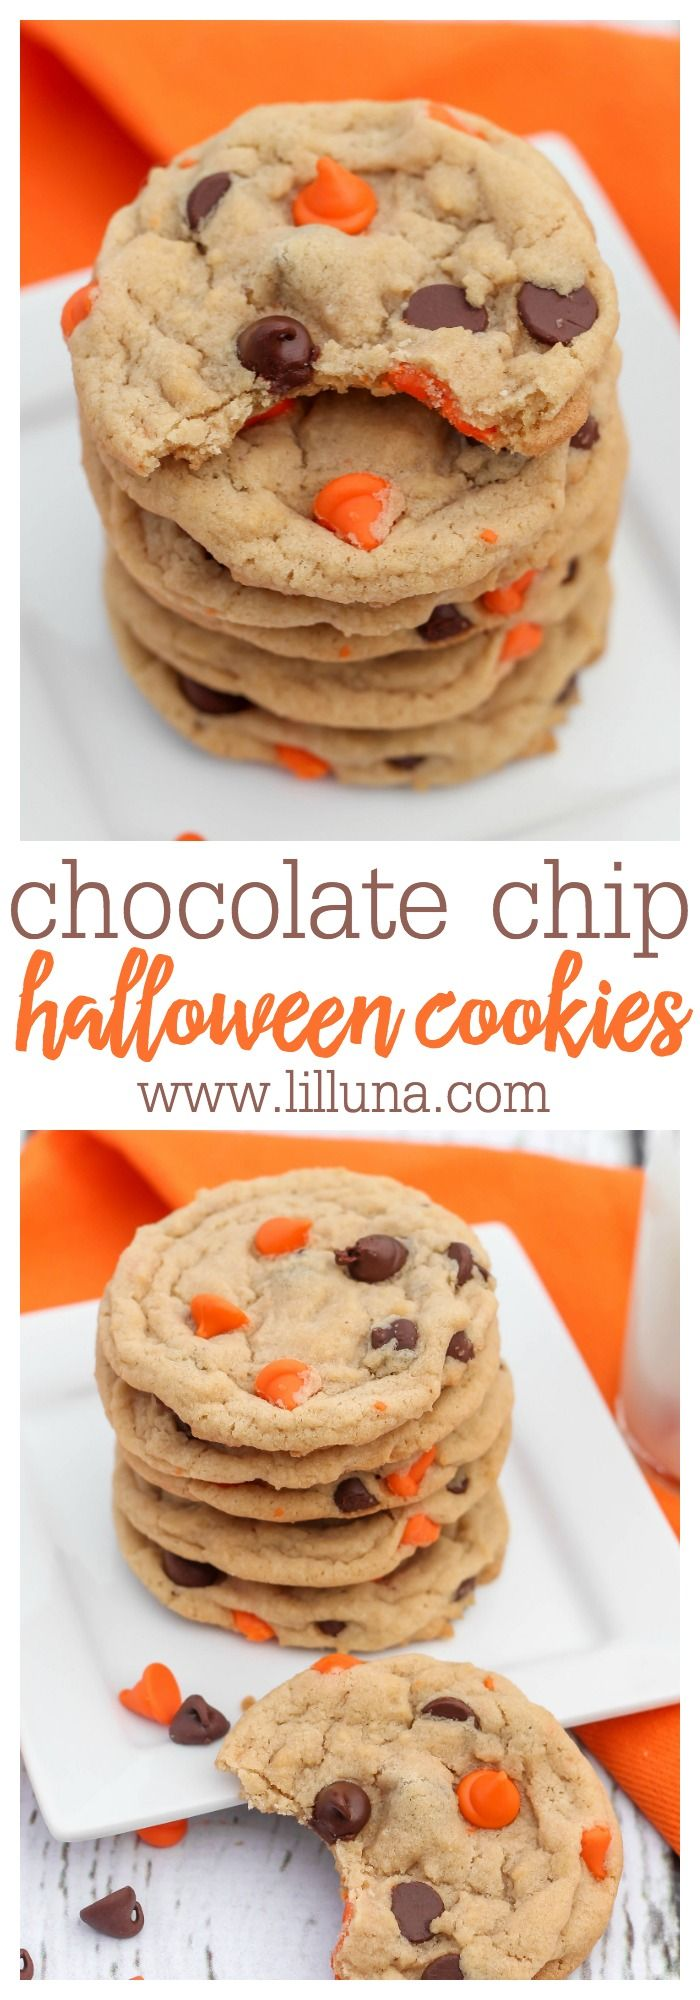 halloween chocolate chip cookies - easy, festive and delicious